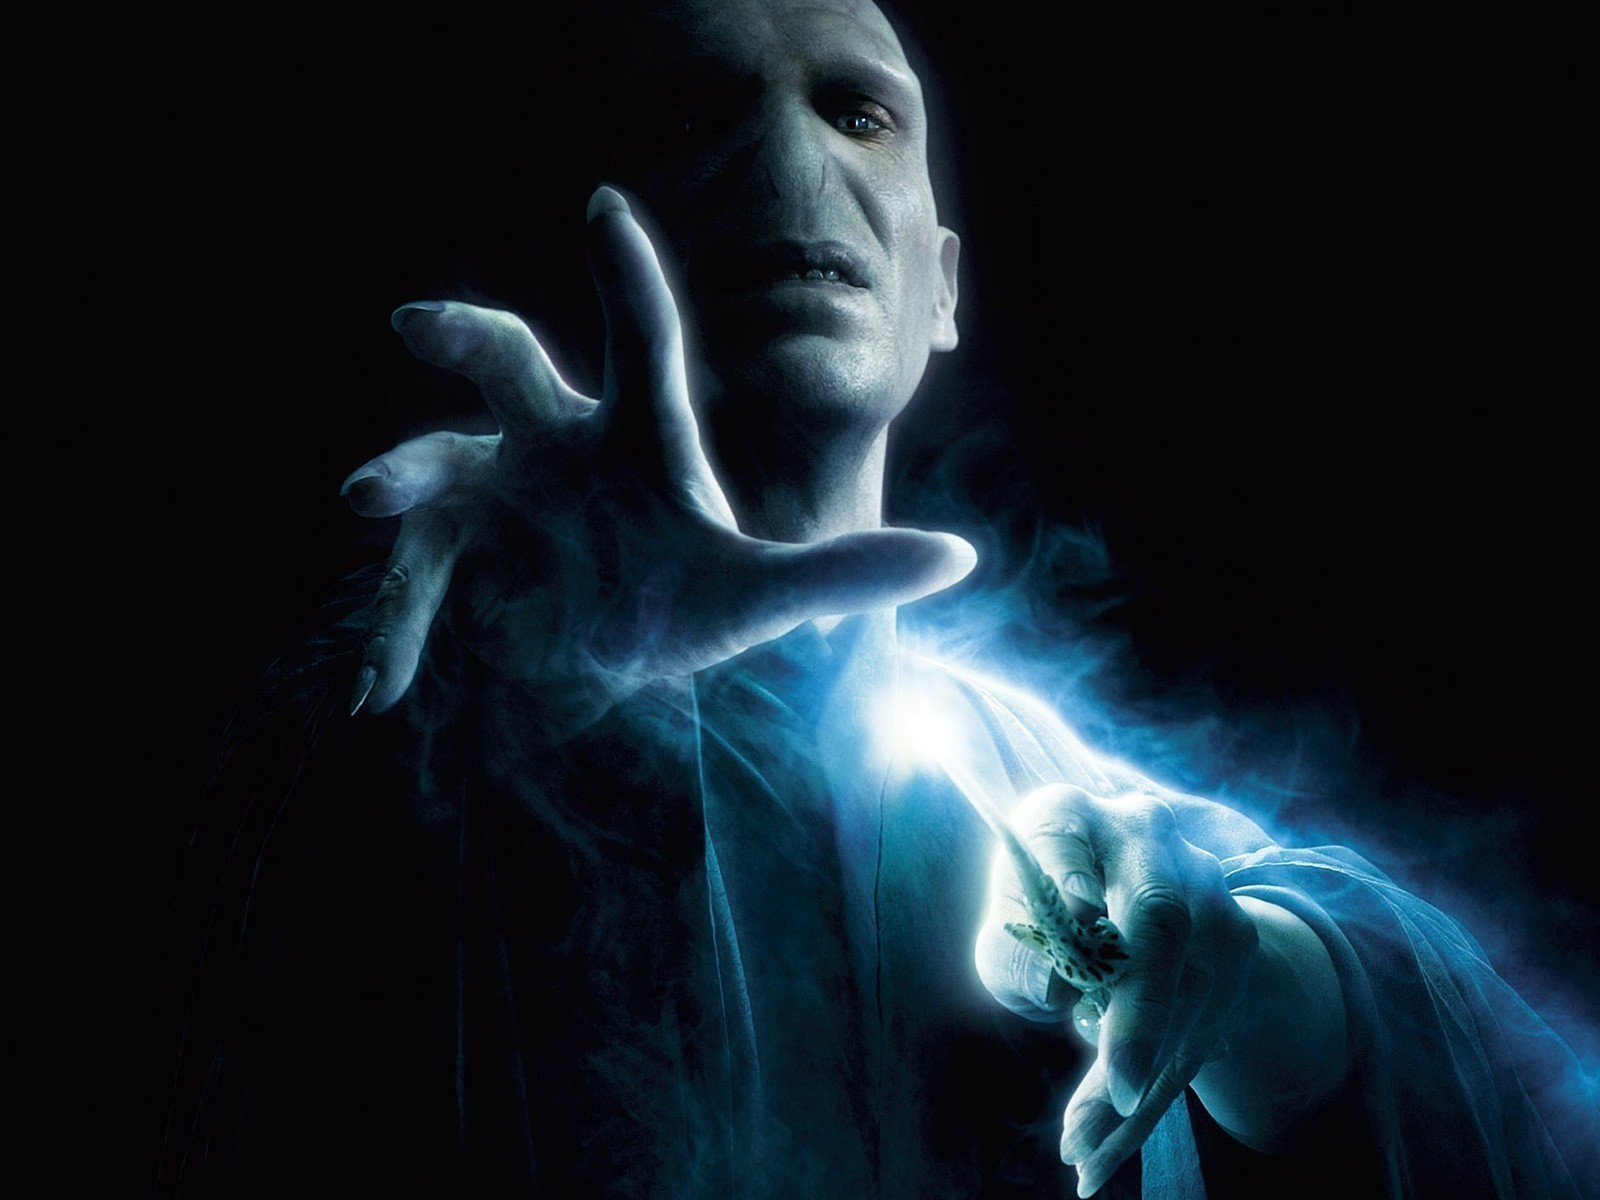 Volan de Mort (a character of a series of novels about Harry Potter)